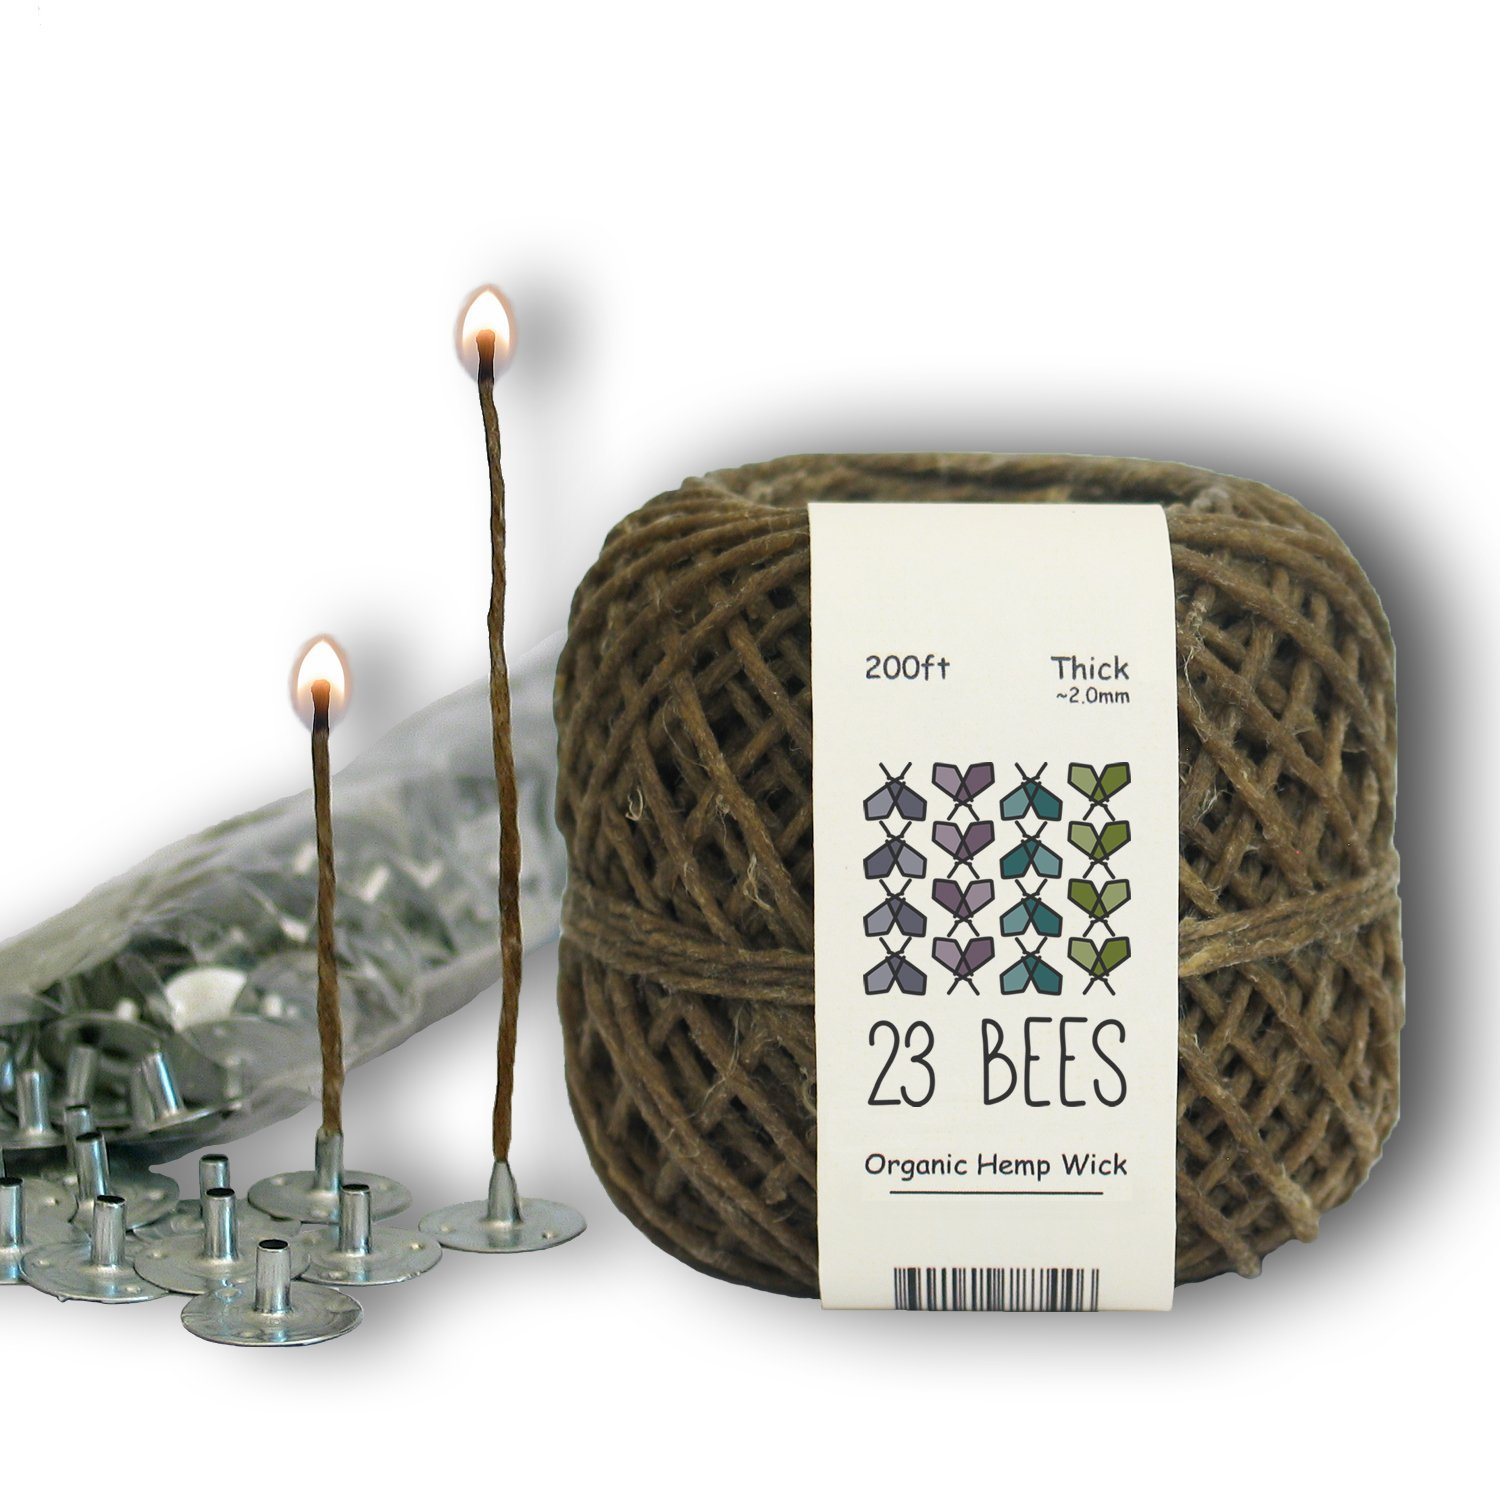 23 Bees 100% Organic Hemp Candle Wick + Wick Sustainer Tabs, 200ft(Thick) x 200pcs